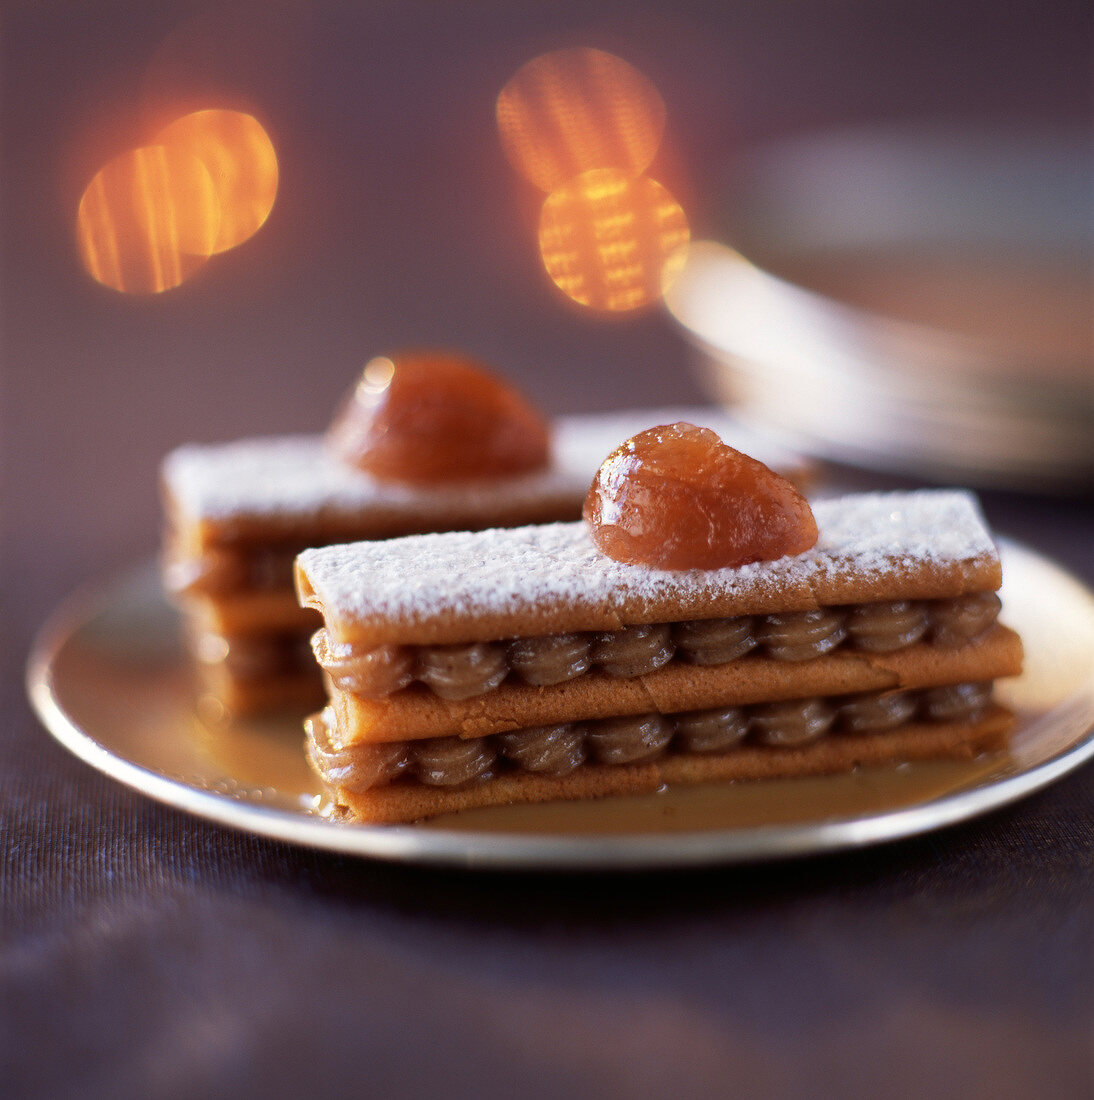 Gavotte and chestnut cream mille-feuille with coffee custard